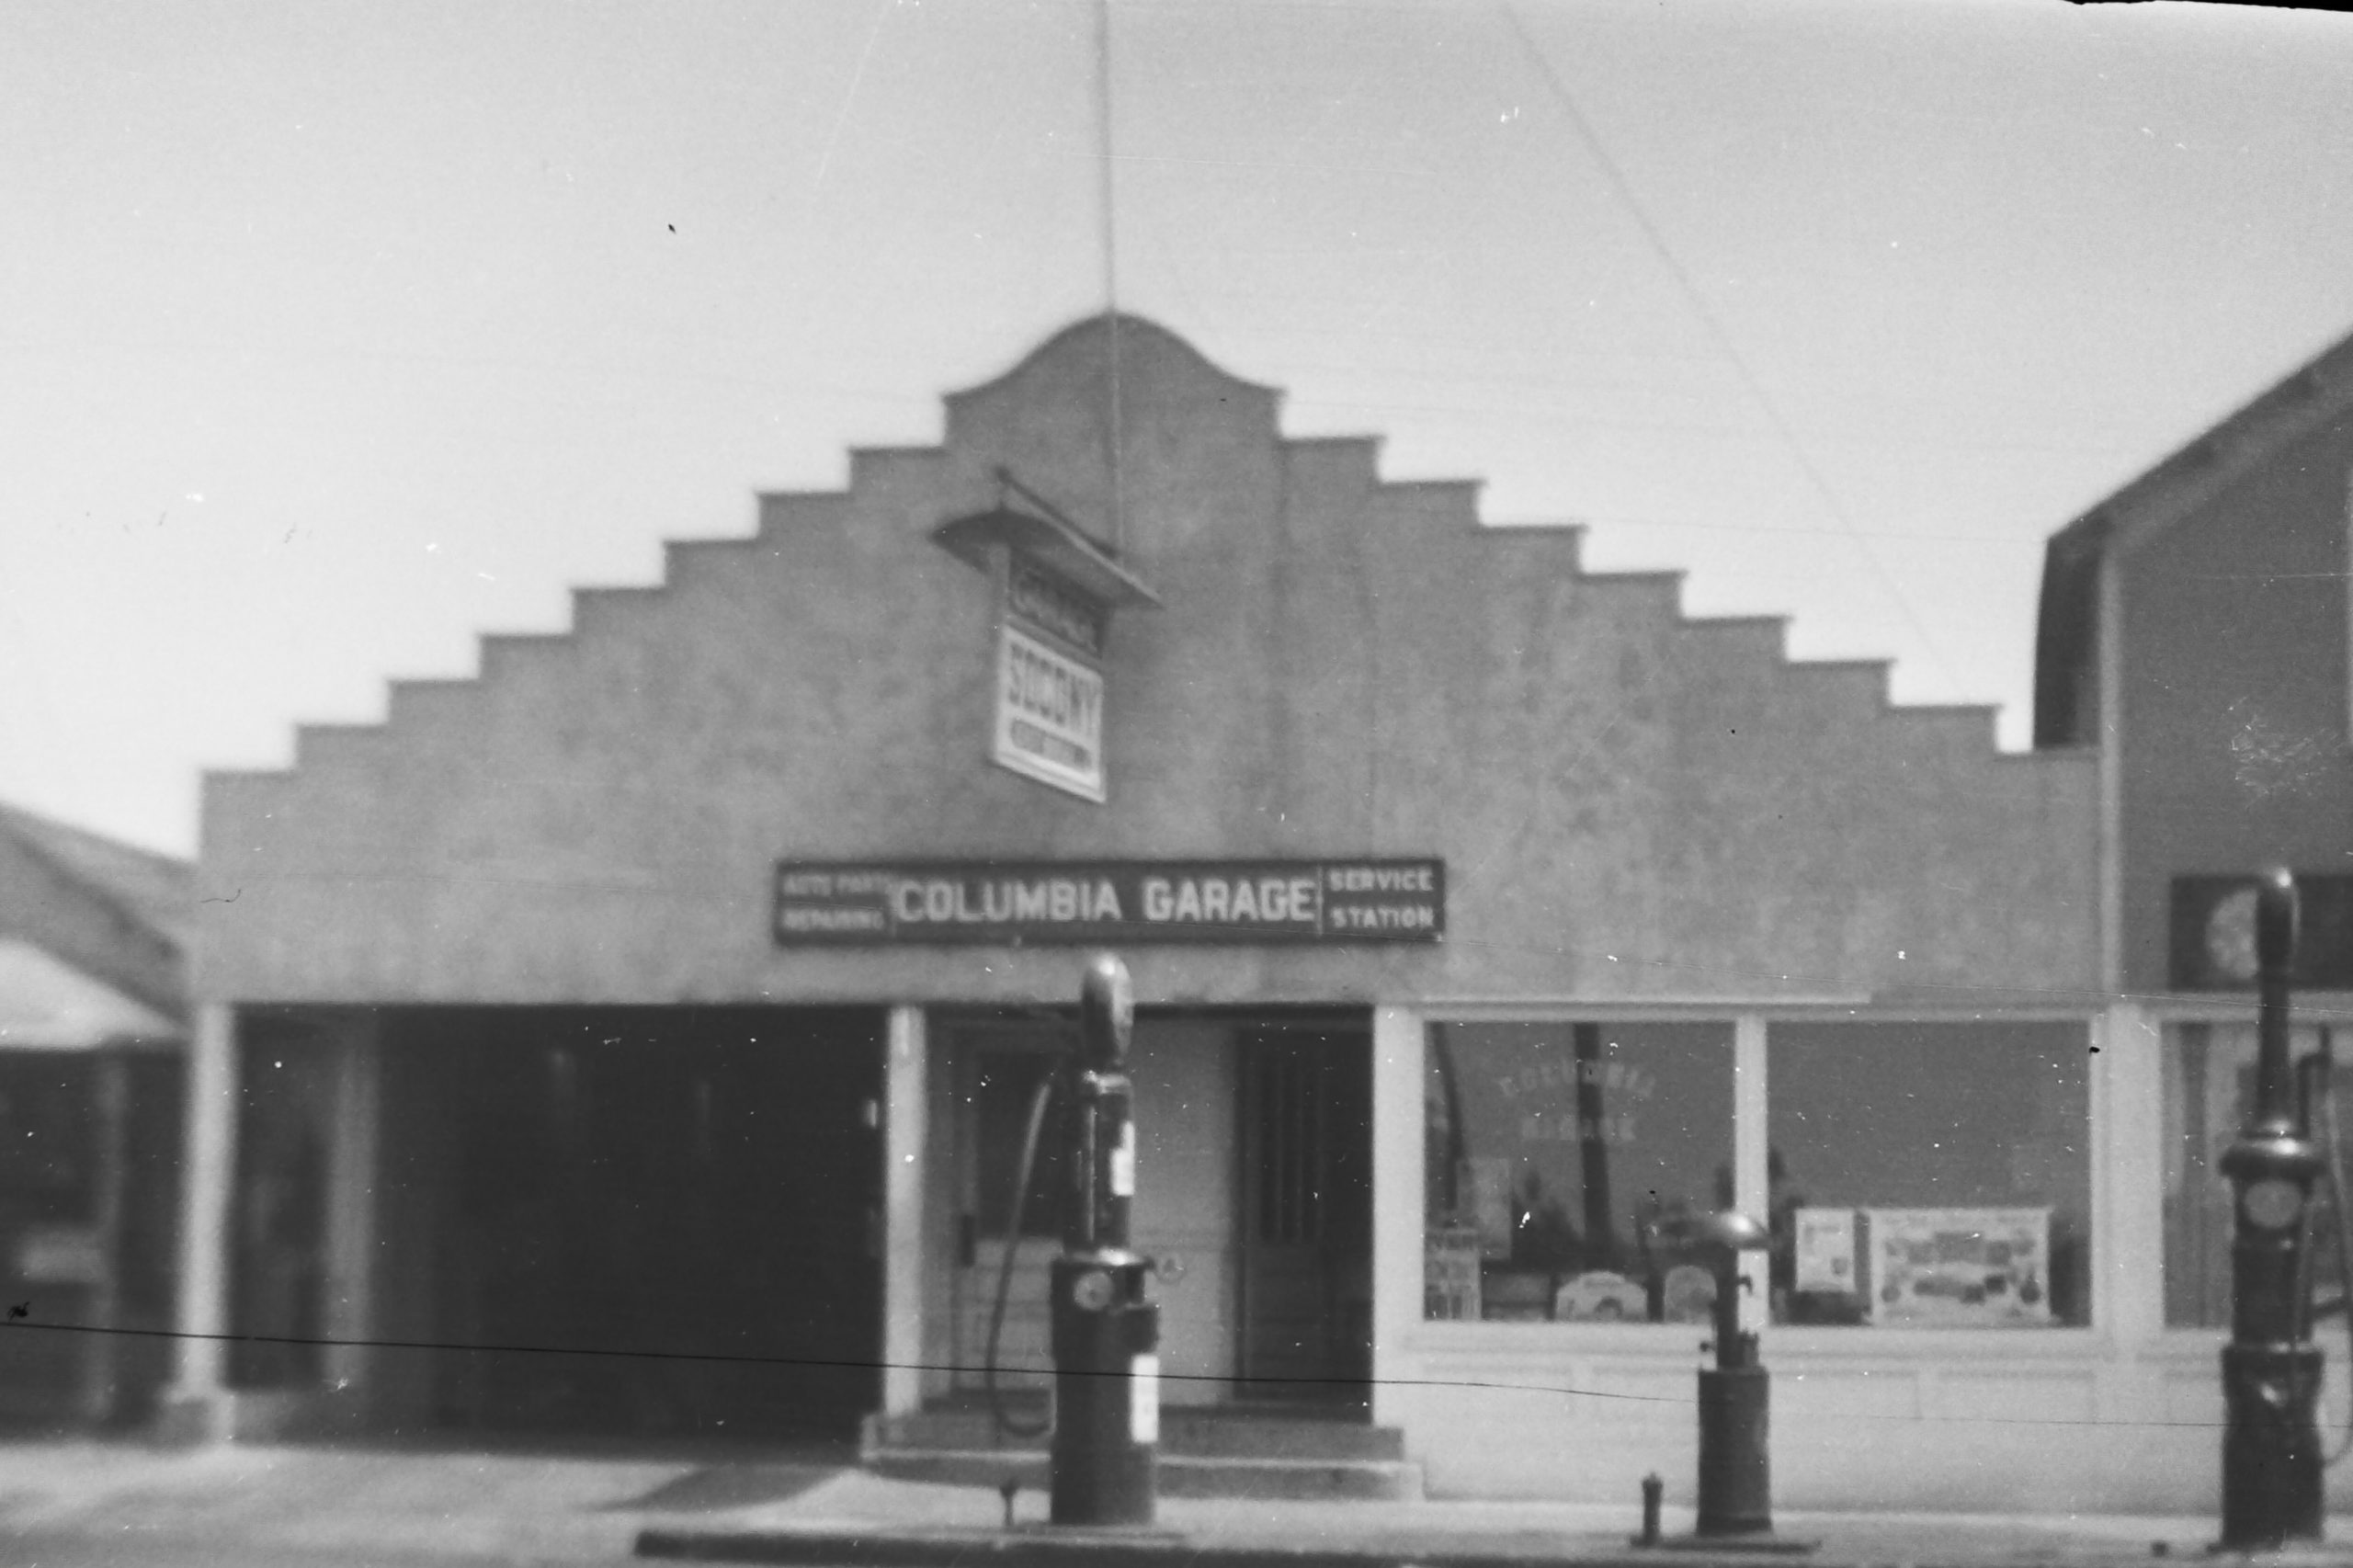 The facade of what was once Columbia Garage still exists today as Village Prime Meat Shoppe and Martin's Design & Construction Consultants.